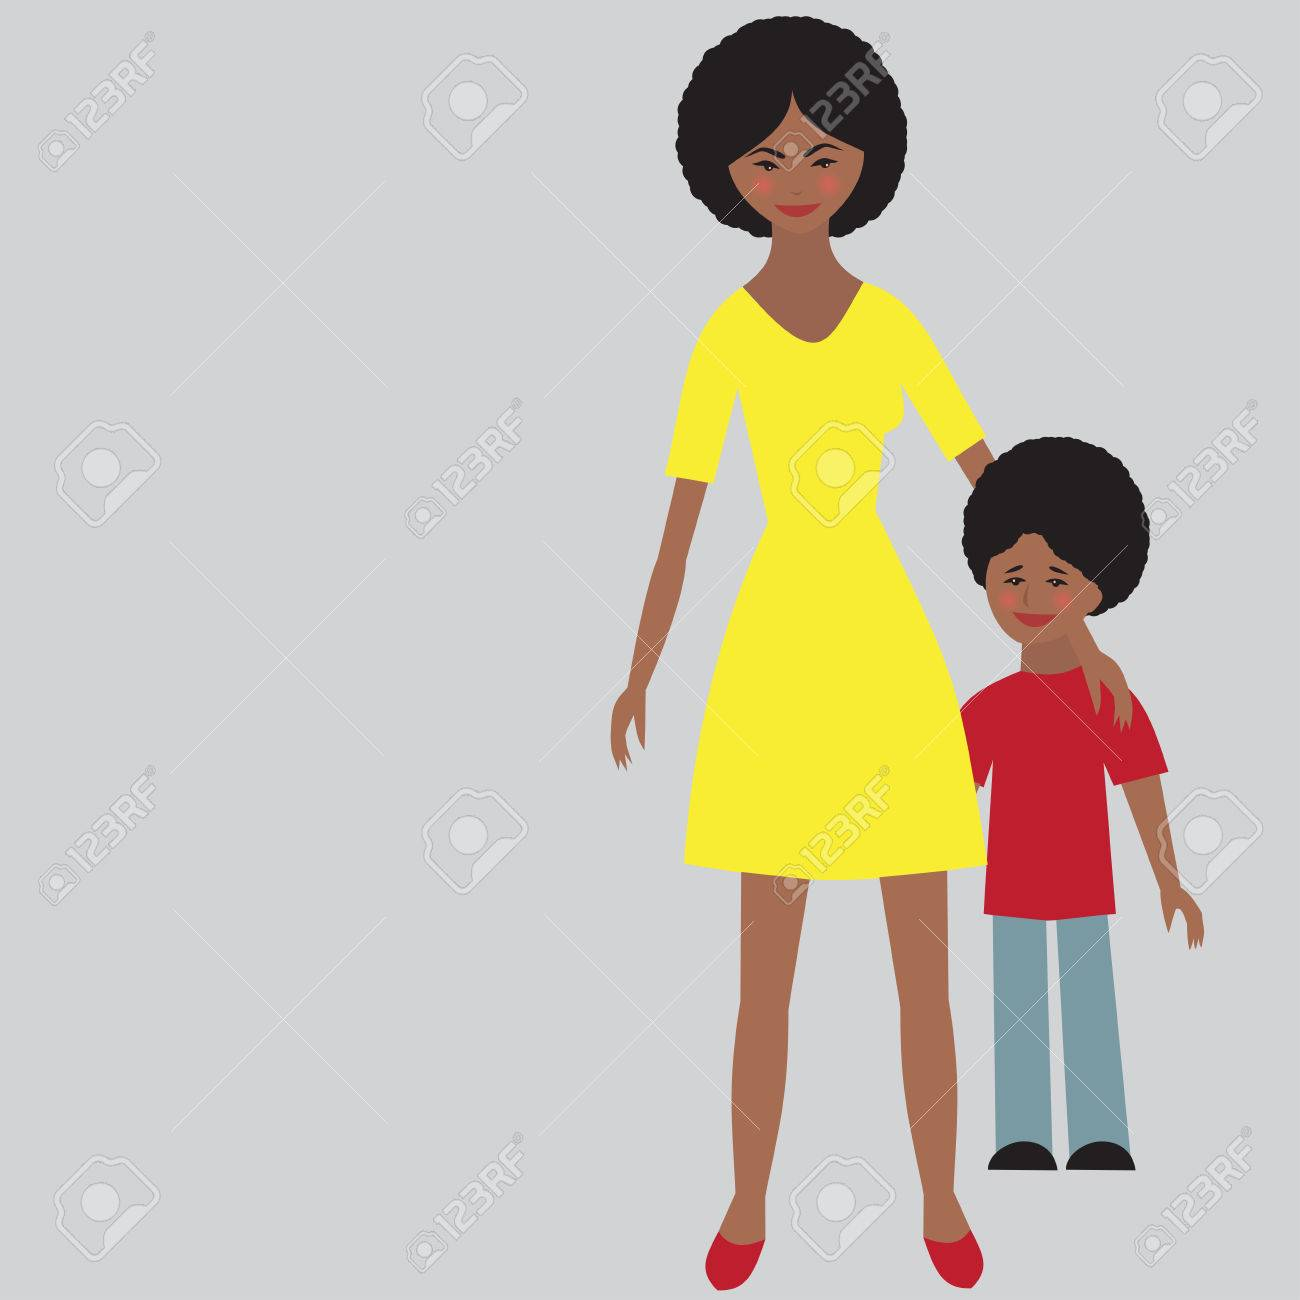 African american mom clipart banner library download Free African American Boy And Mom Clipart & Free Clip Art Images ... banner library download